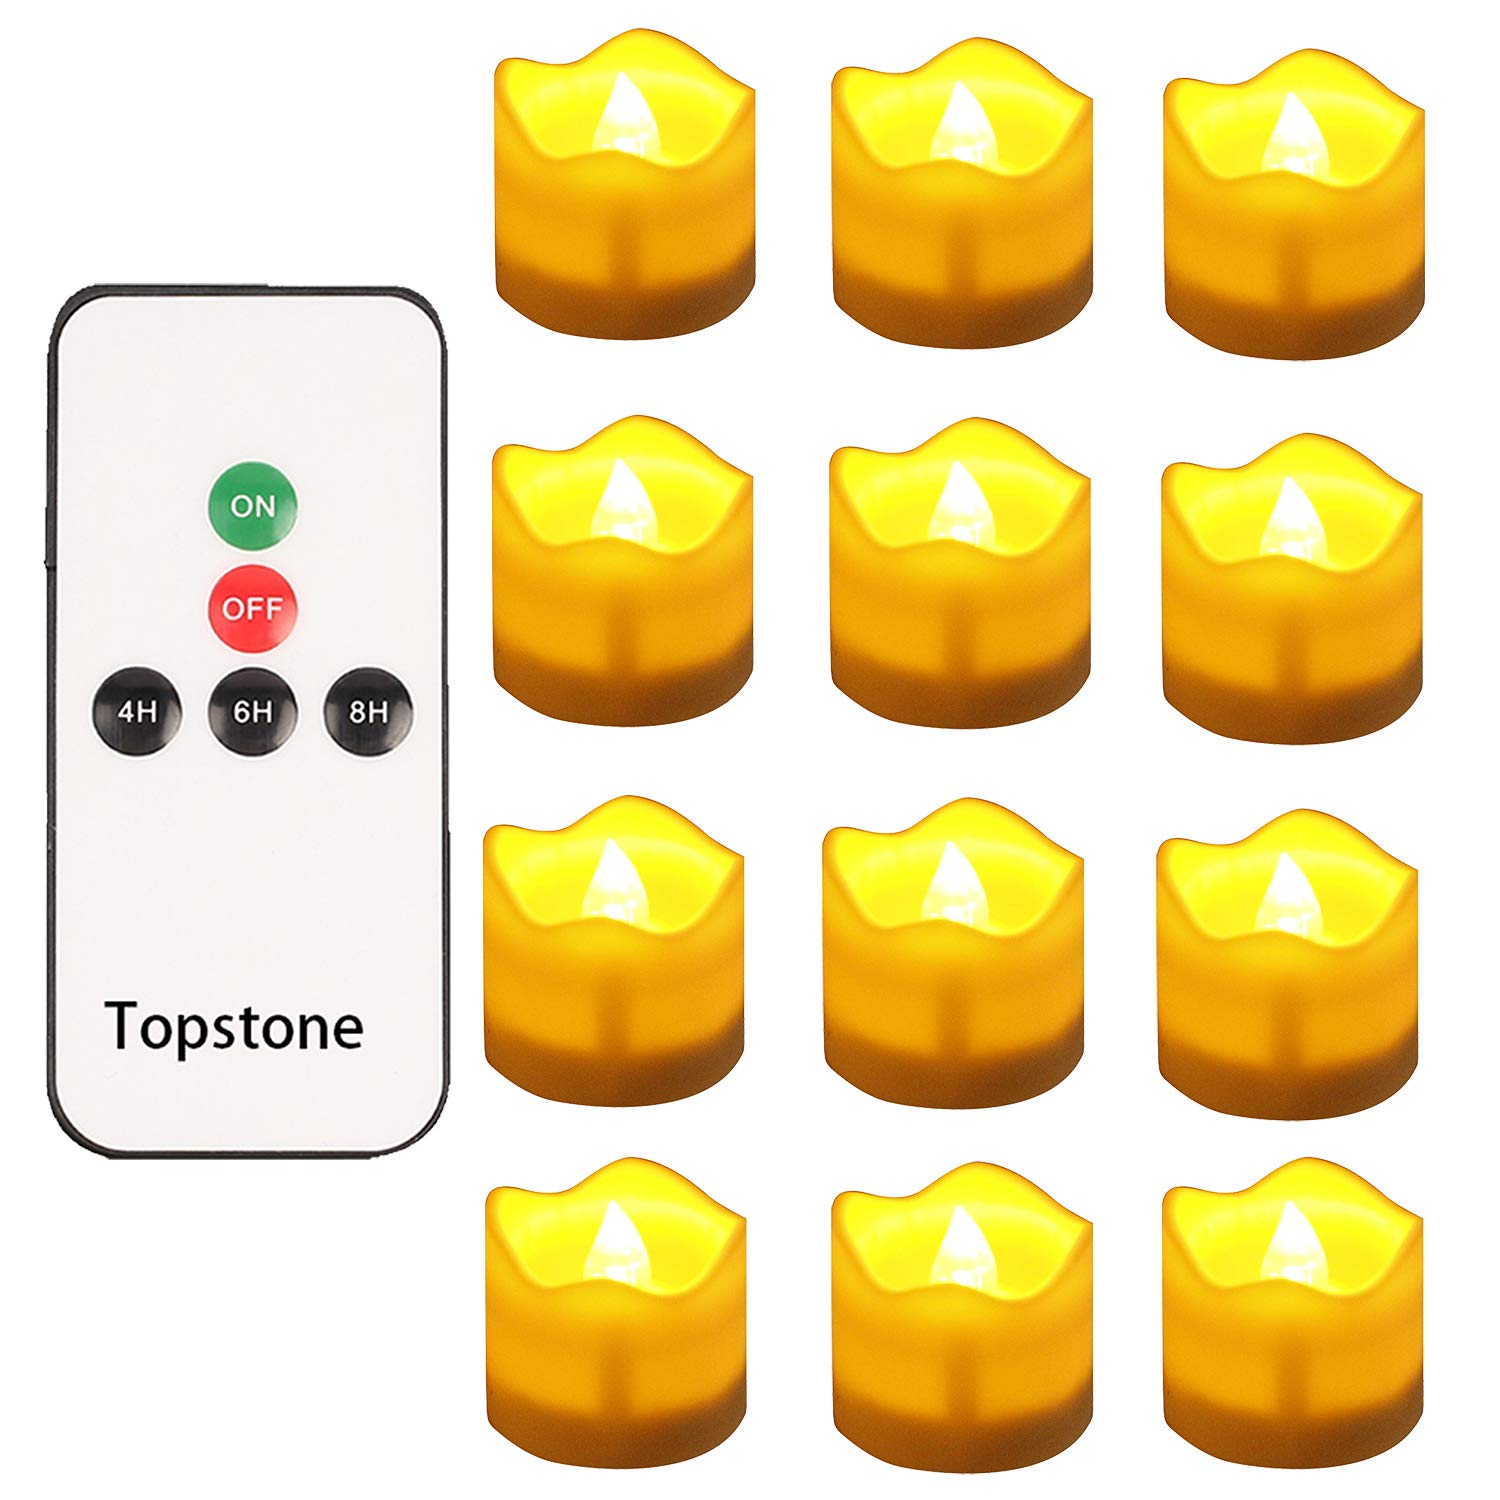 Topstone LED Tealights with remote.  Set of 12